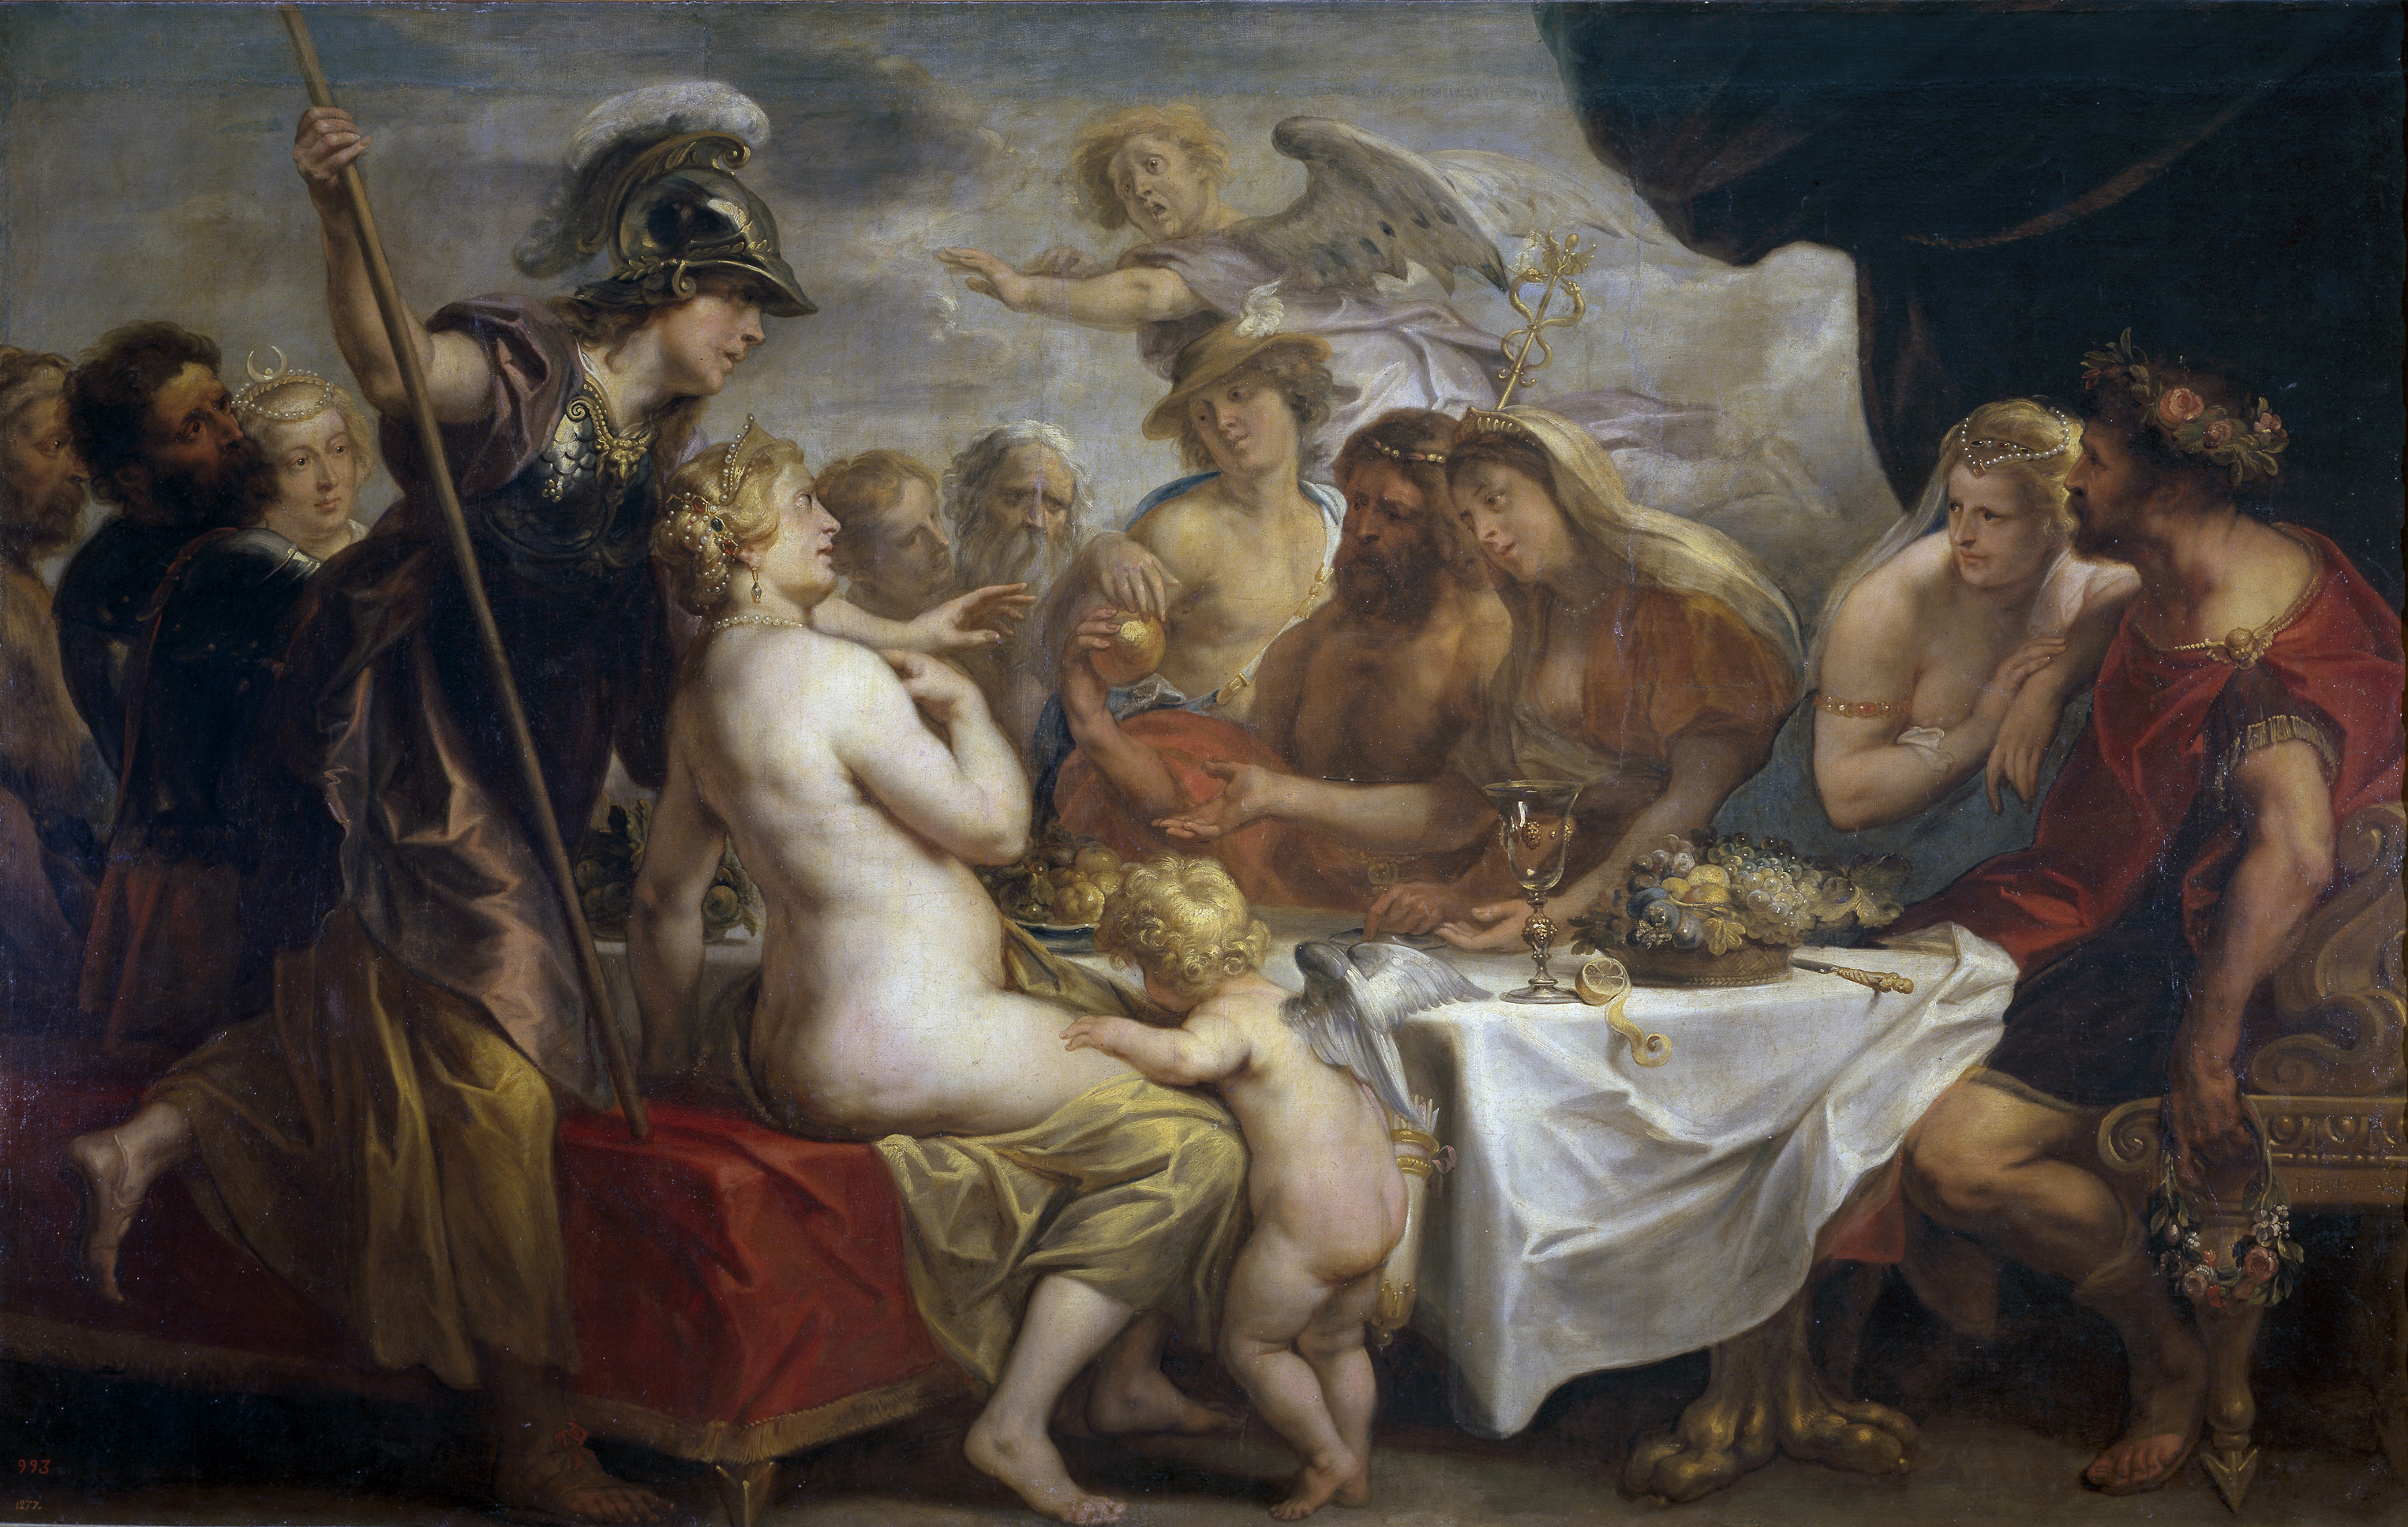 Jacob Jordaens: paintings with titles and descriptions 77